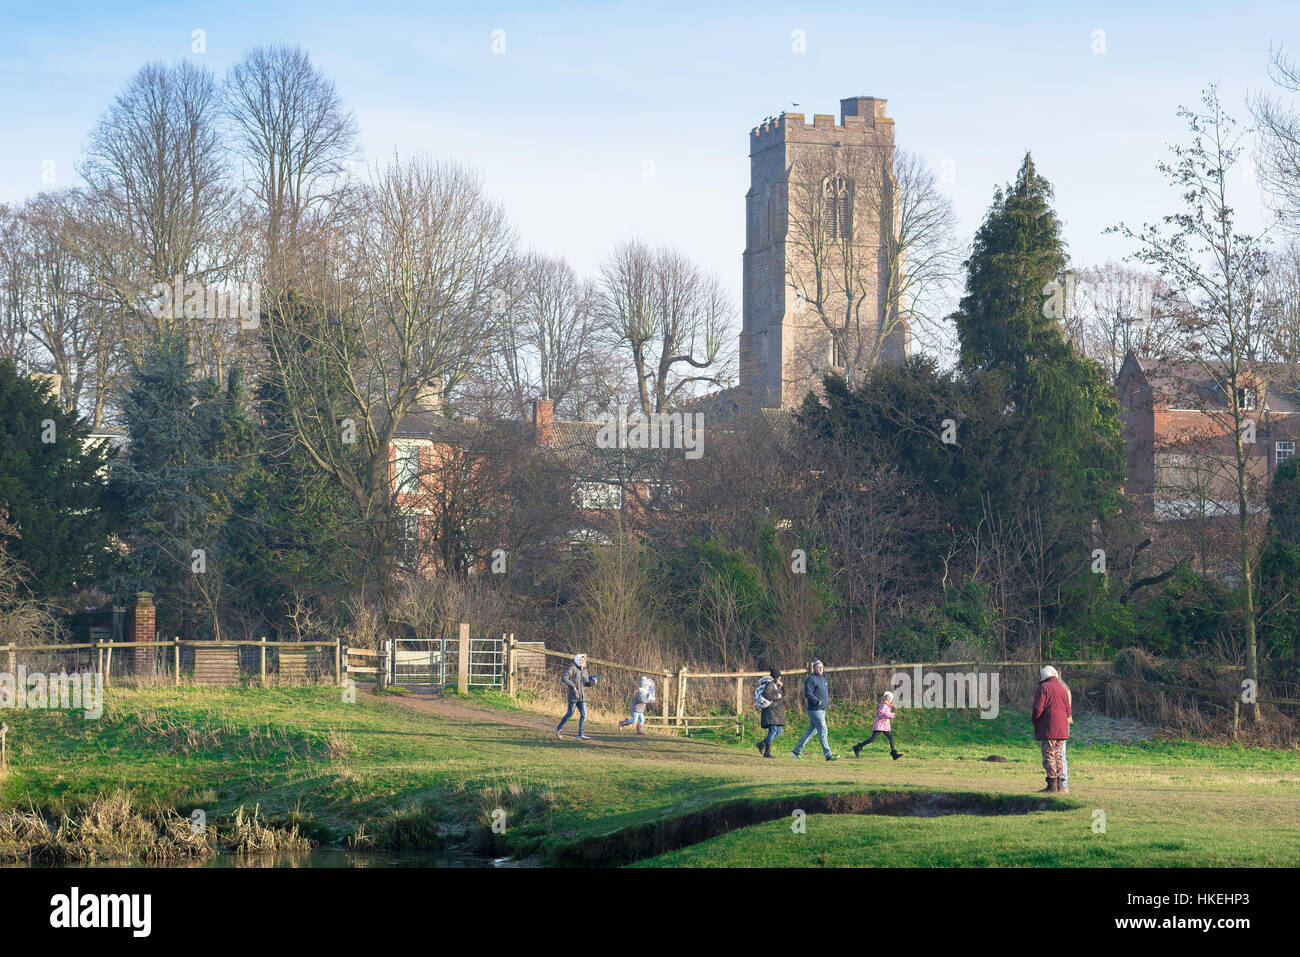 Sudbury Suffolk, people walk through the water meadows in the Suffolk town of Sudbury on a winter afternoon, UK. - Stock Image